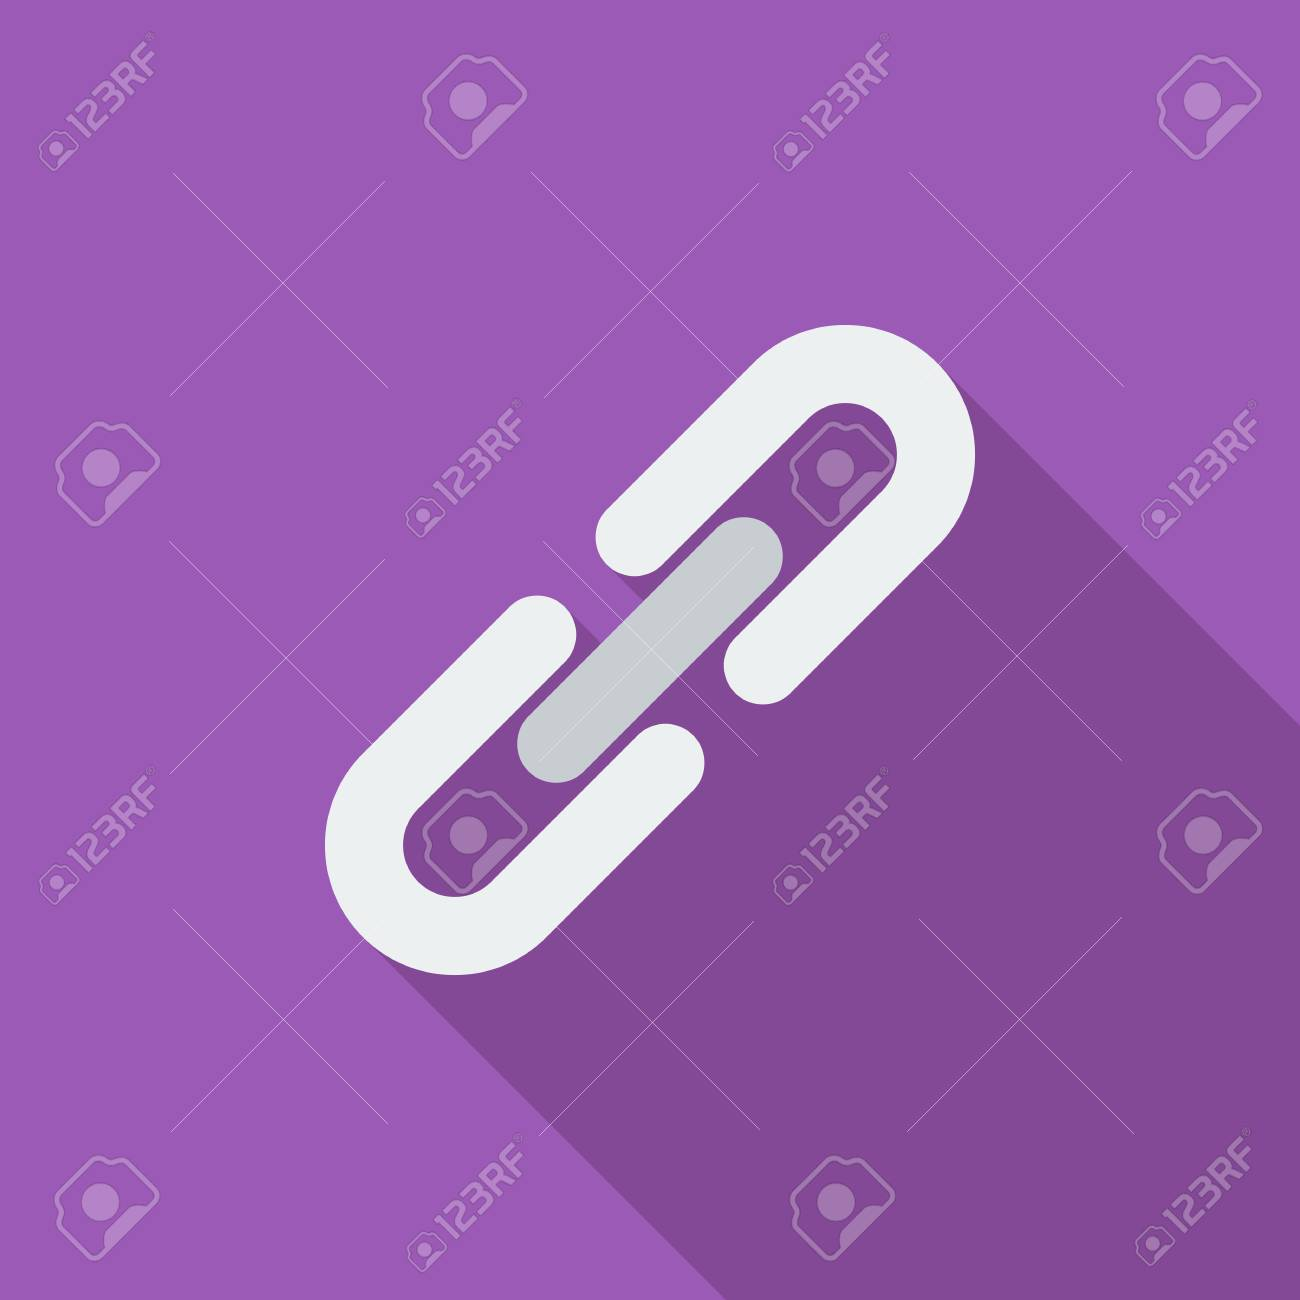 Link Icon Flat Vector Related Icon With Long Shadow For Web